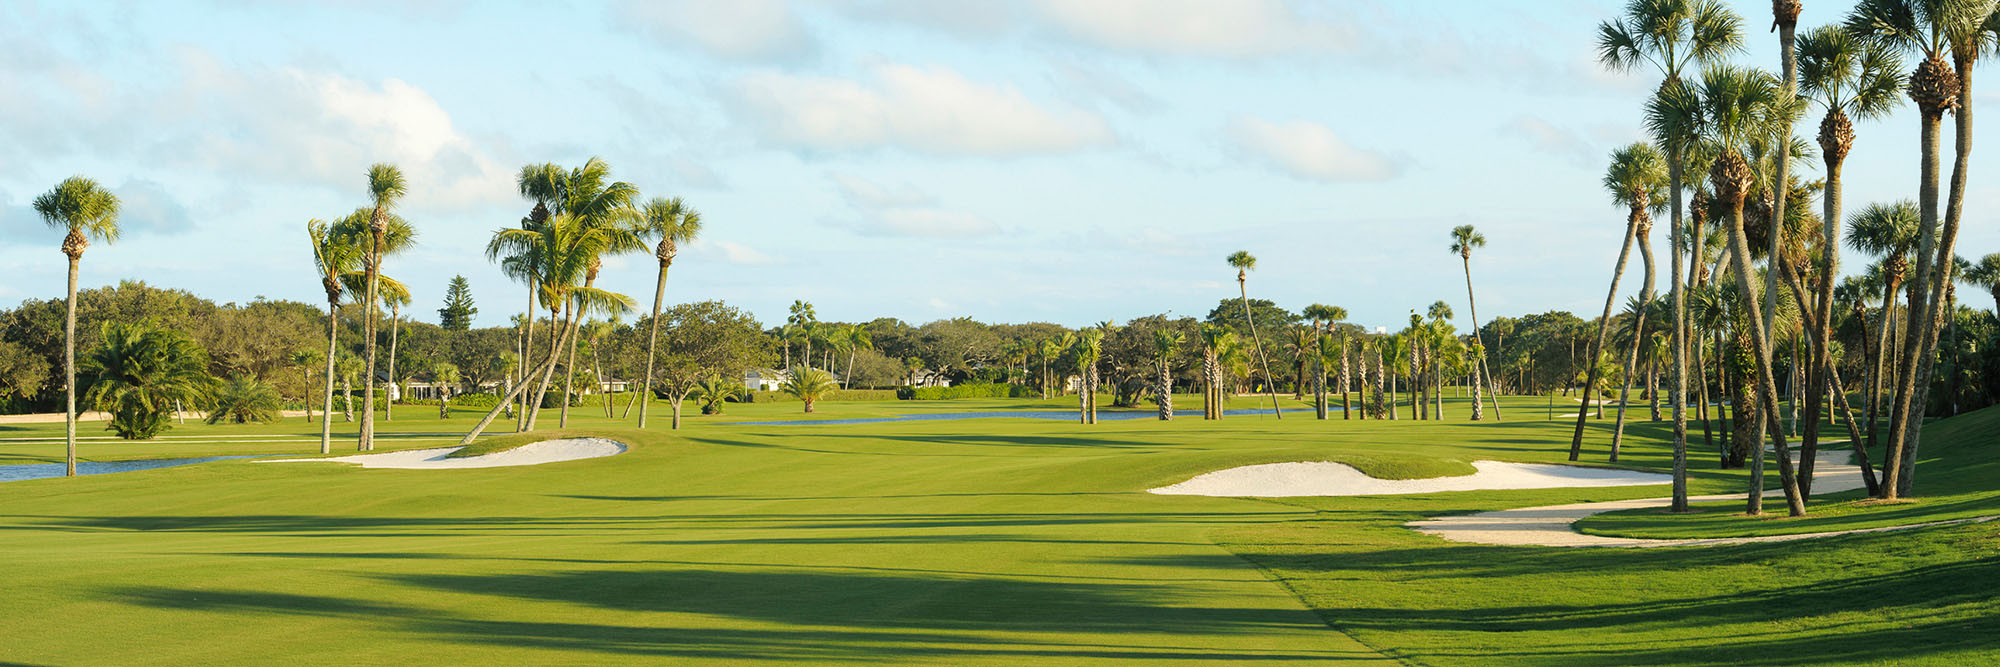 Golf Course Image - Riomar No. 12